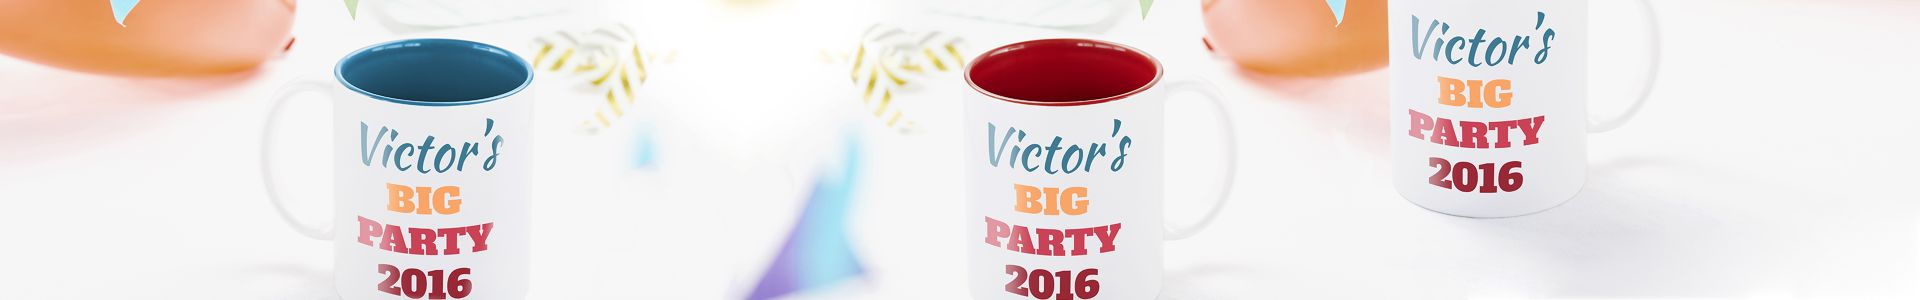 Mugs for events and celebrations | Camaloon